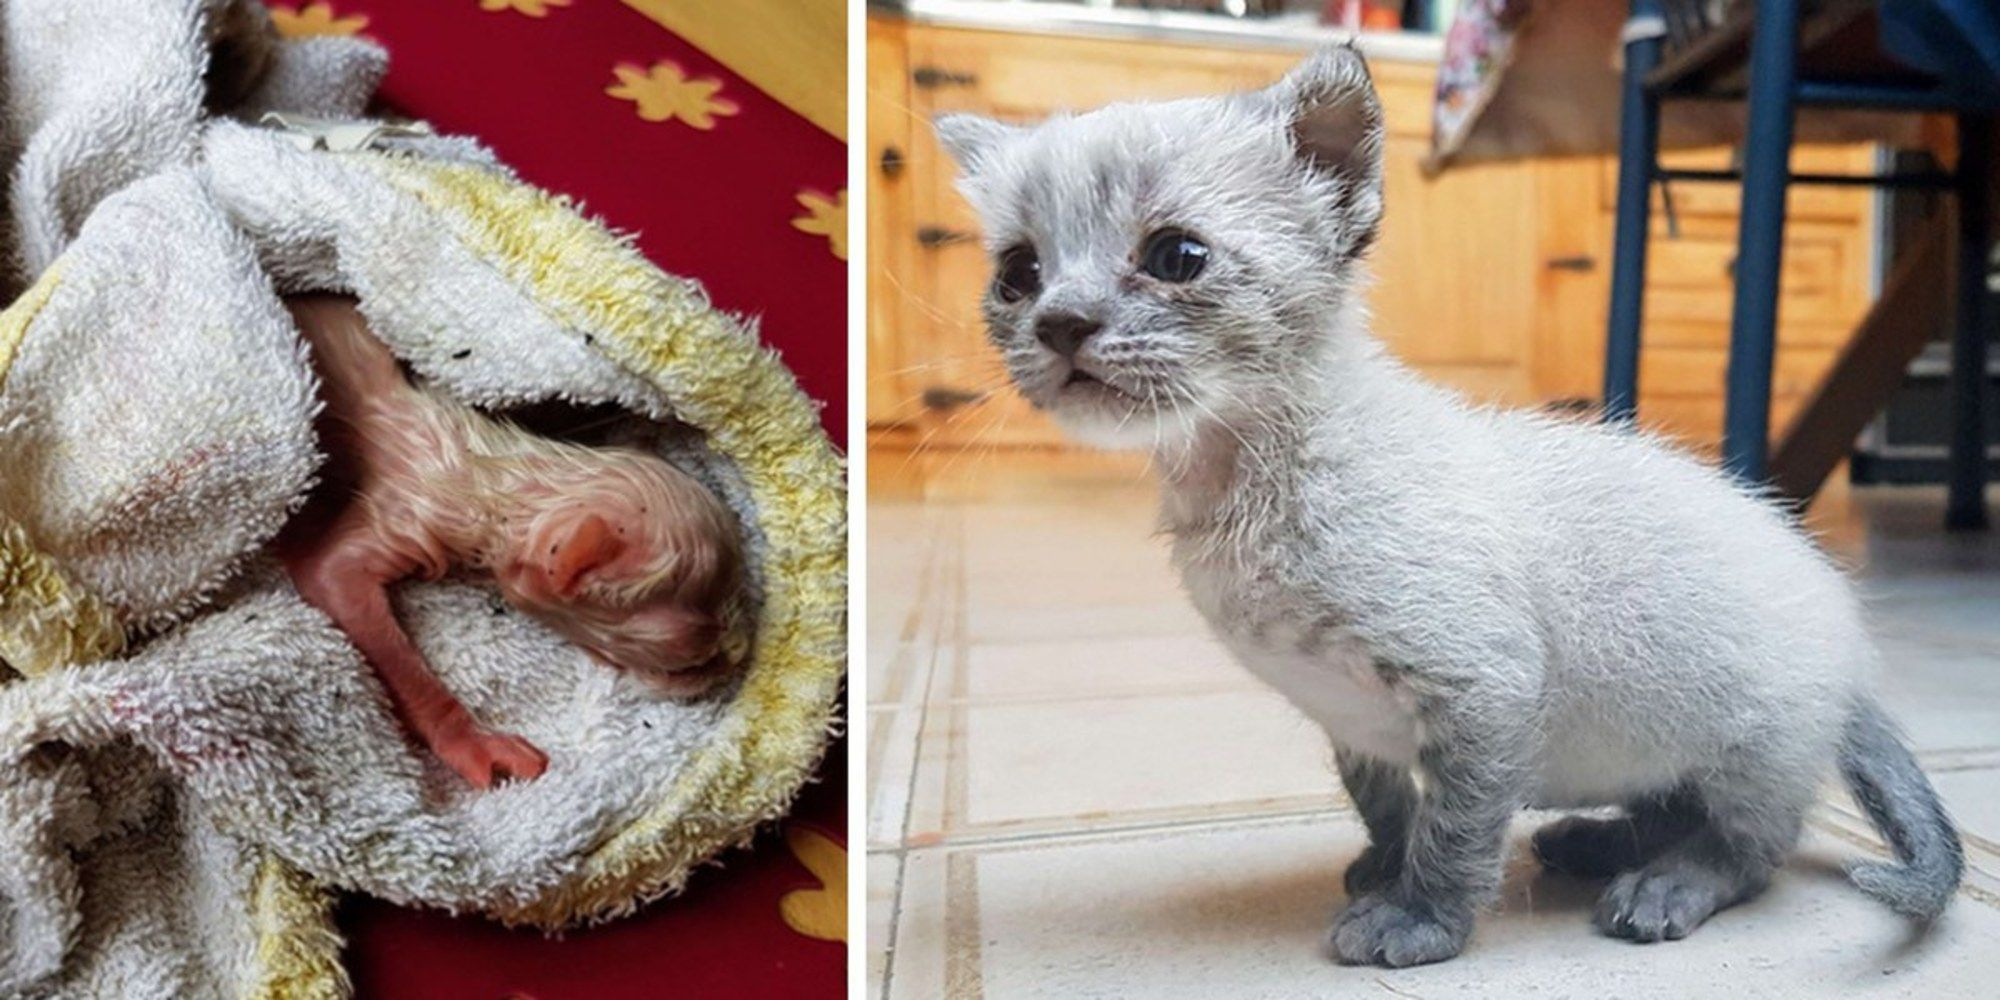 Kitten Found on Roof Meowing for Help Hours After Birth